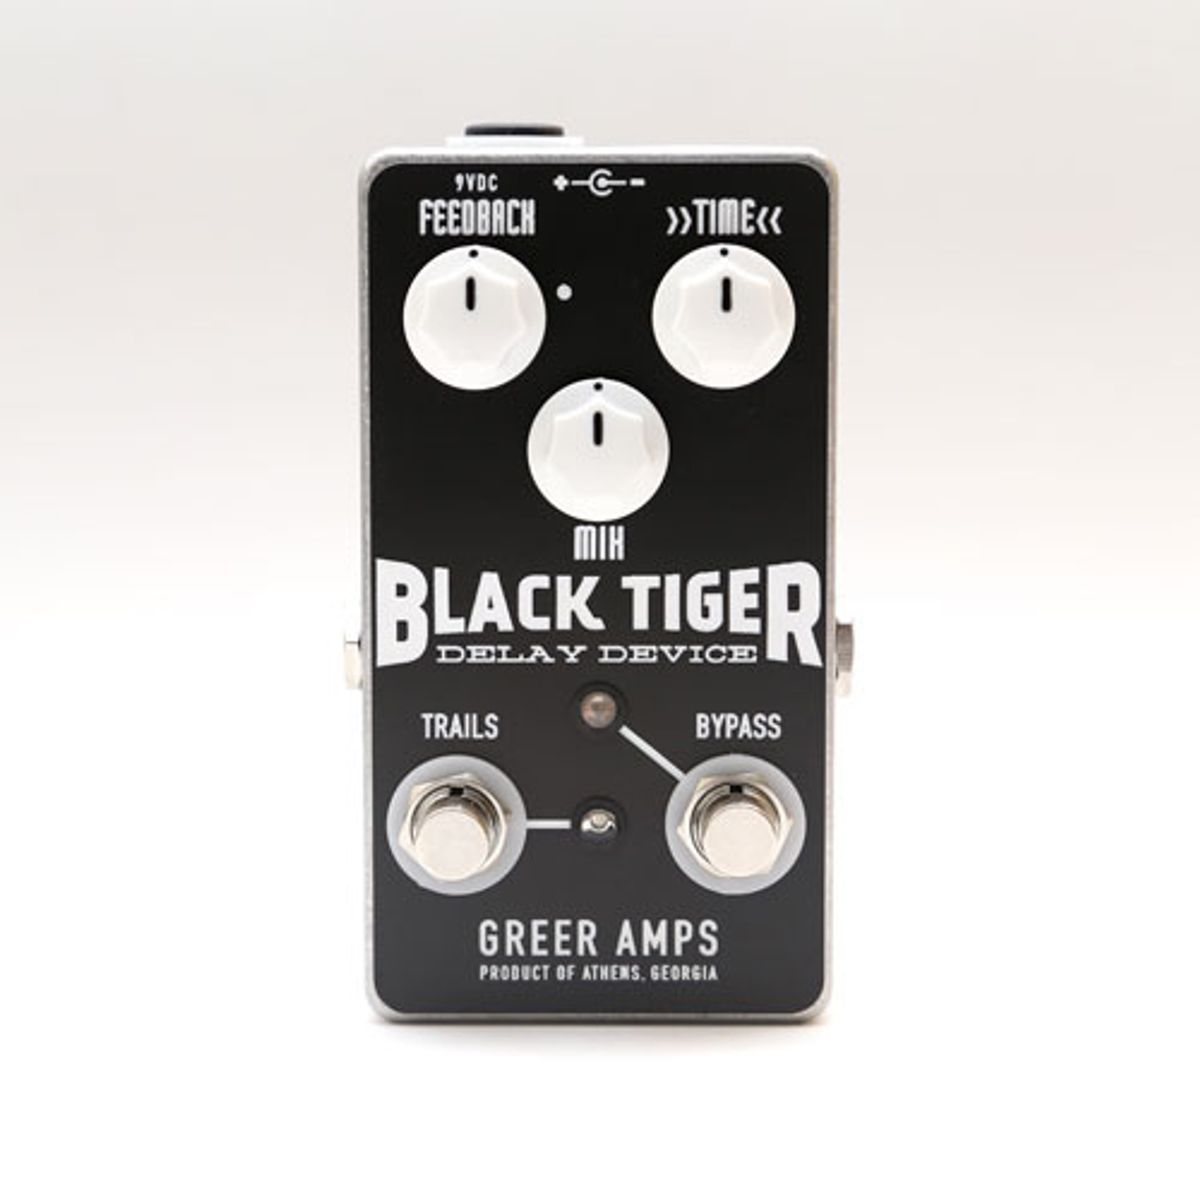 Greer Amps Introduces the Black Tiger Delay and Hammer Distortion